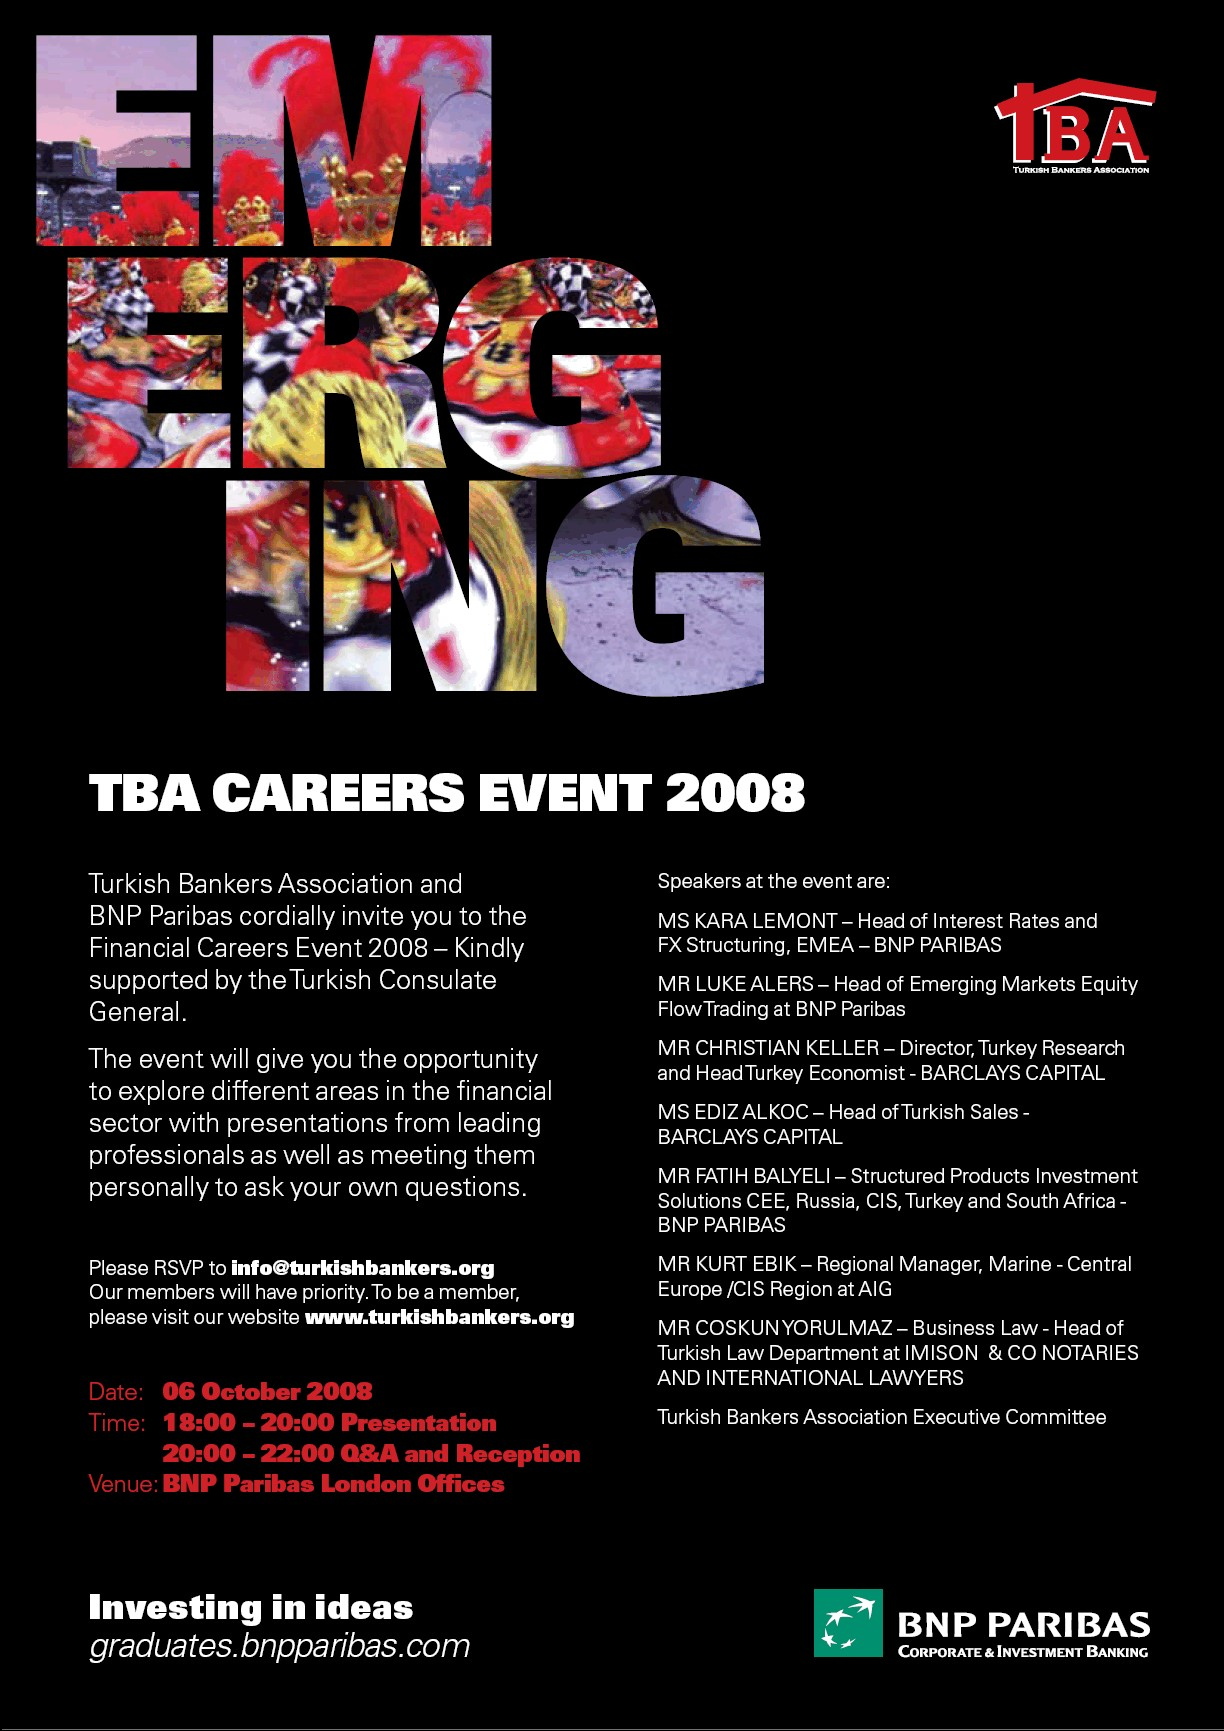 TBA-CAREER-EVENT